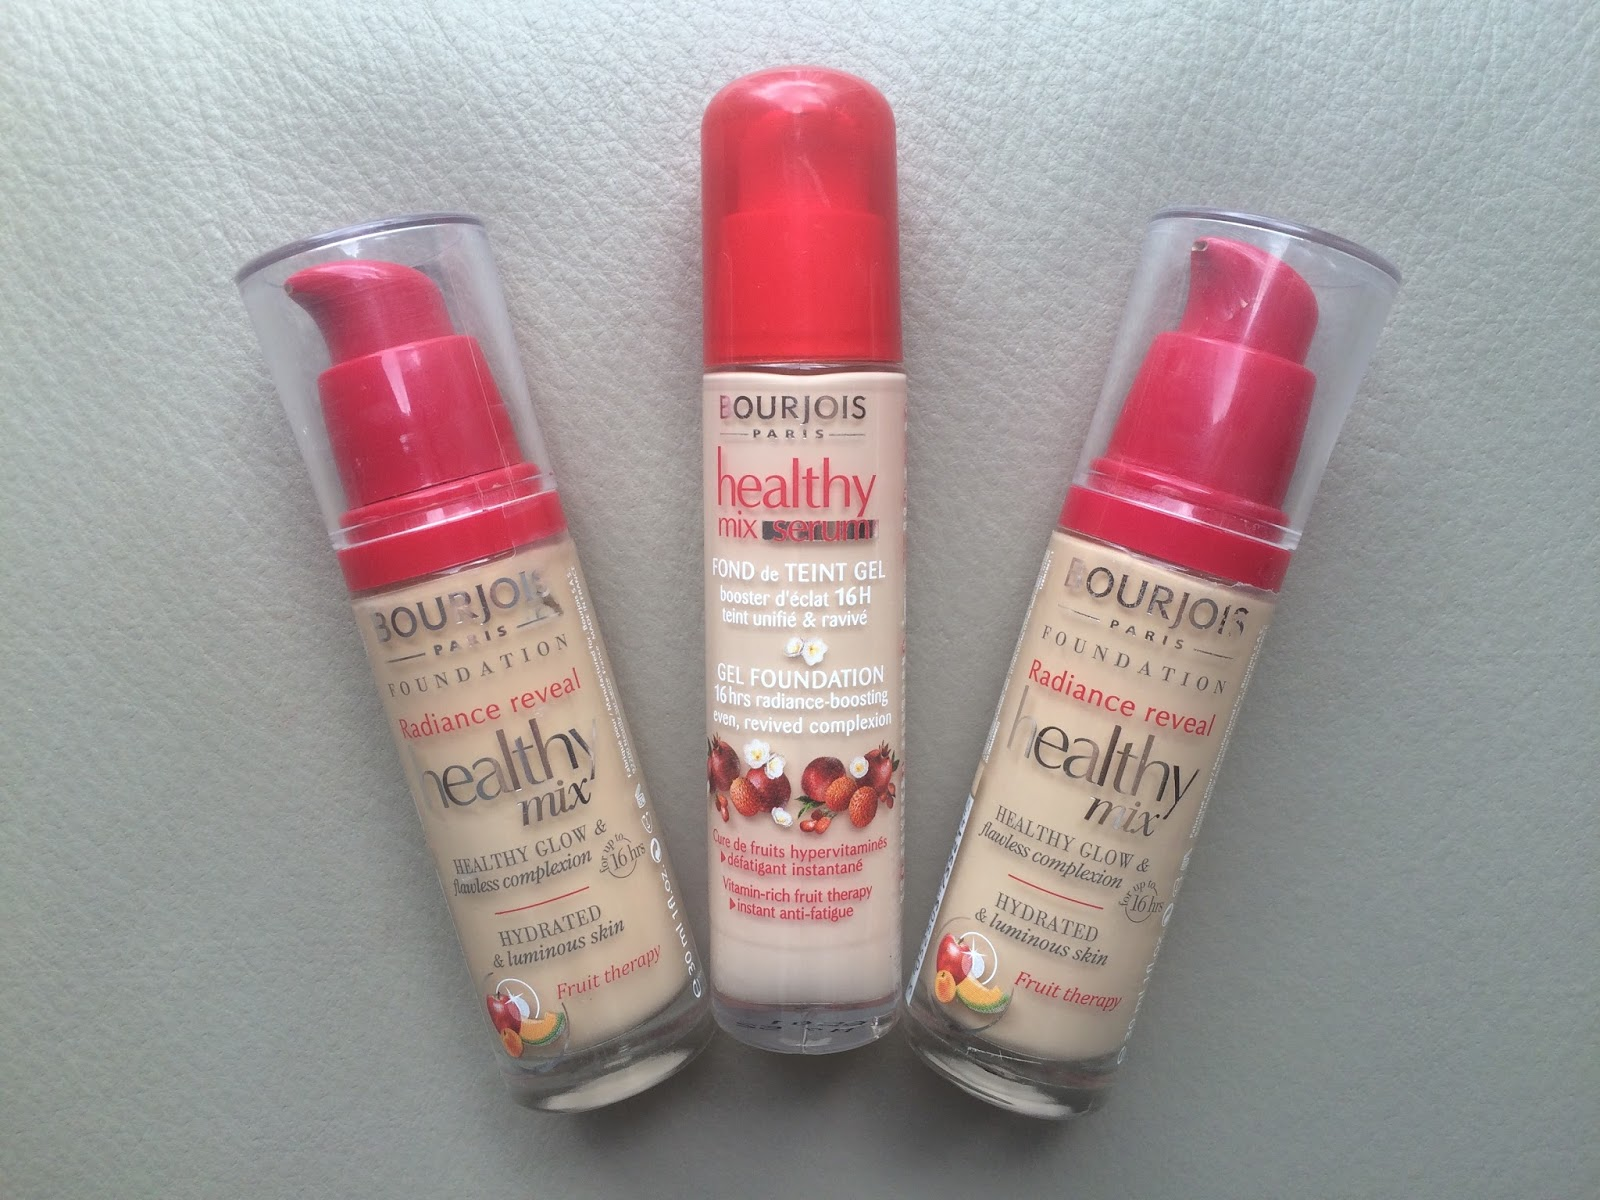 shirley sit review bourjois healthy mix foundation x healthy mix serum foundation. Black Bedroom Furniture Sets. Home Design Ideas